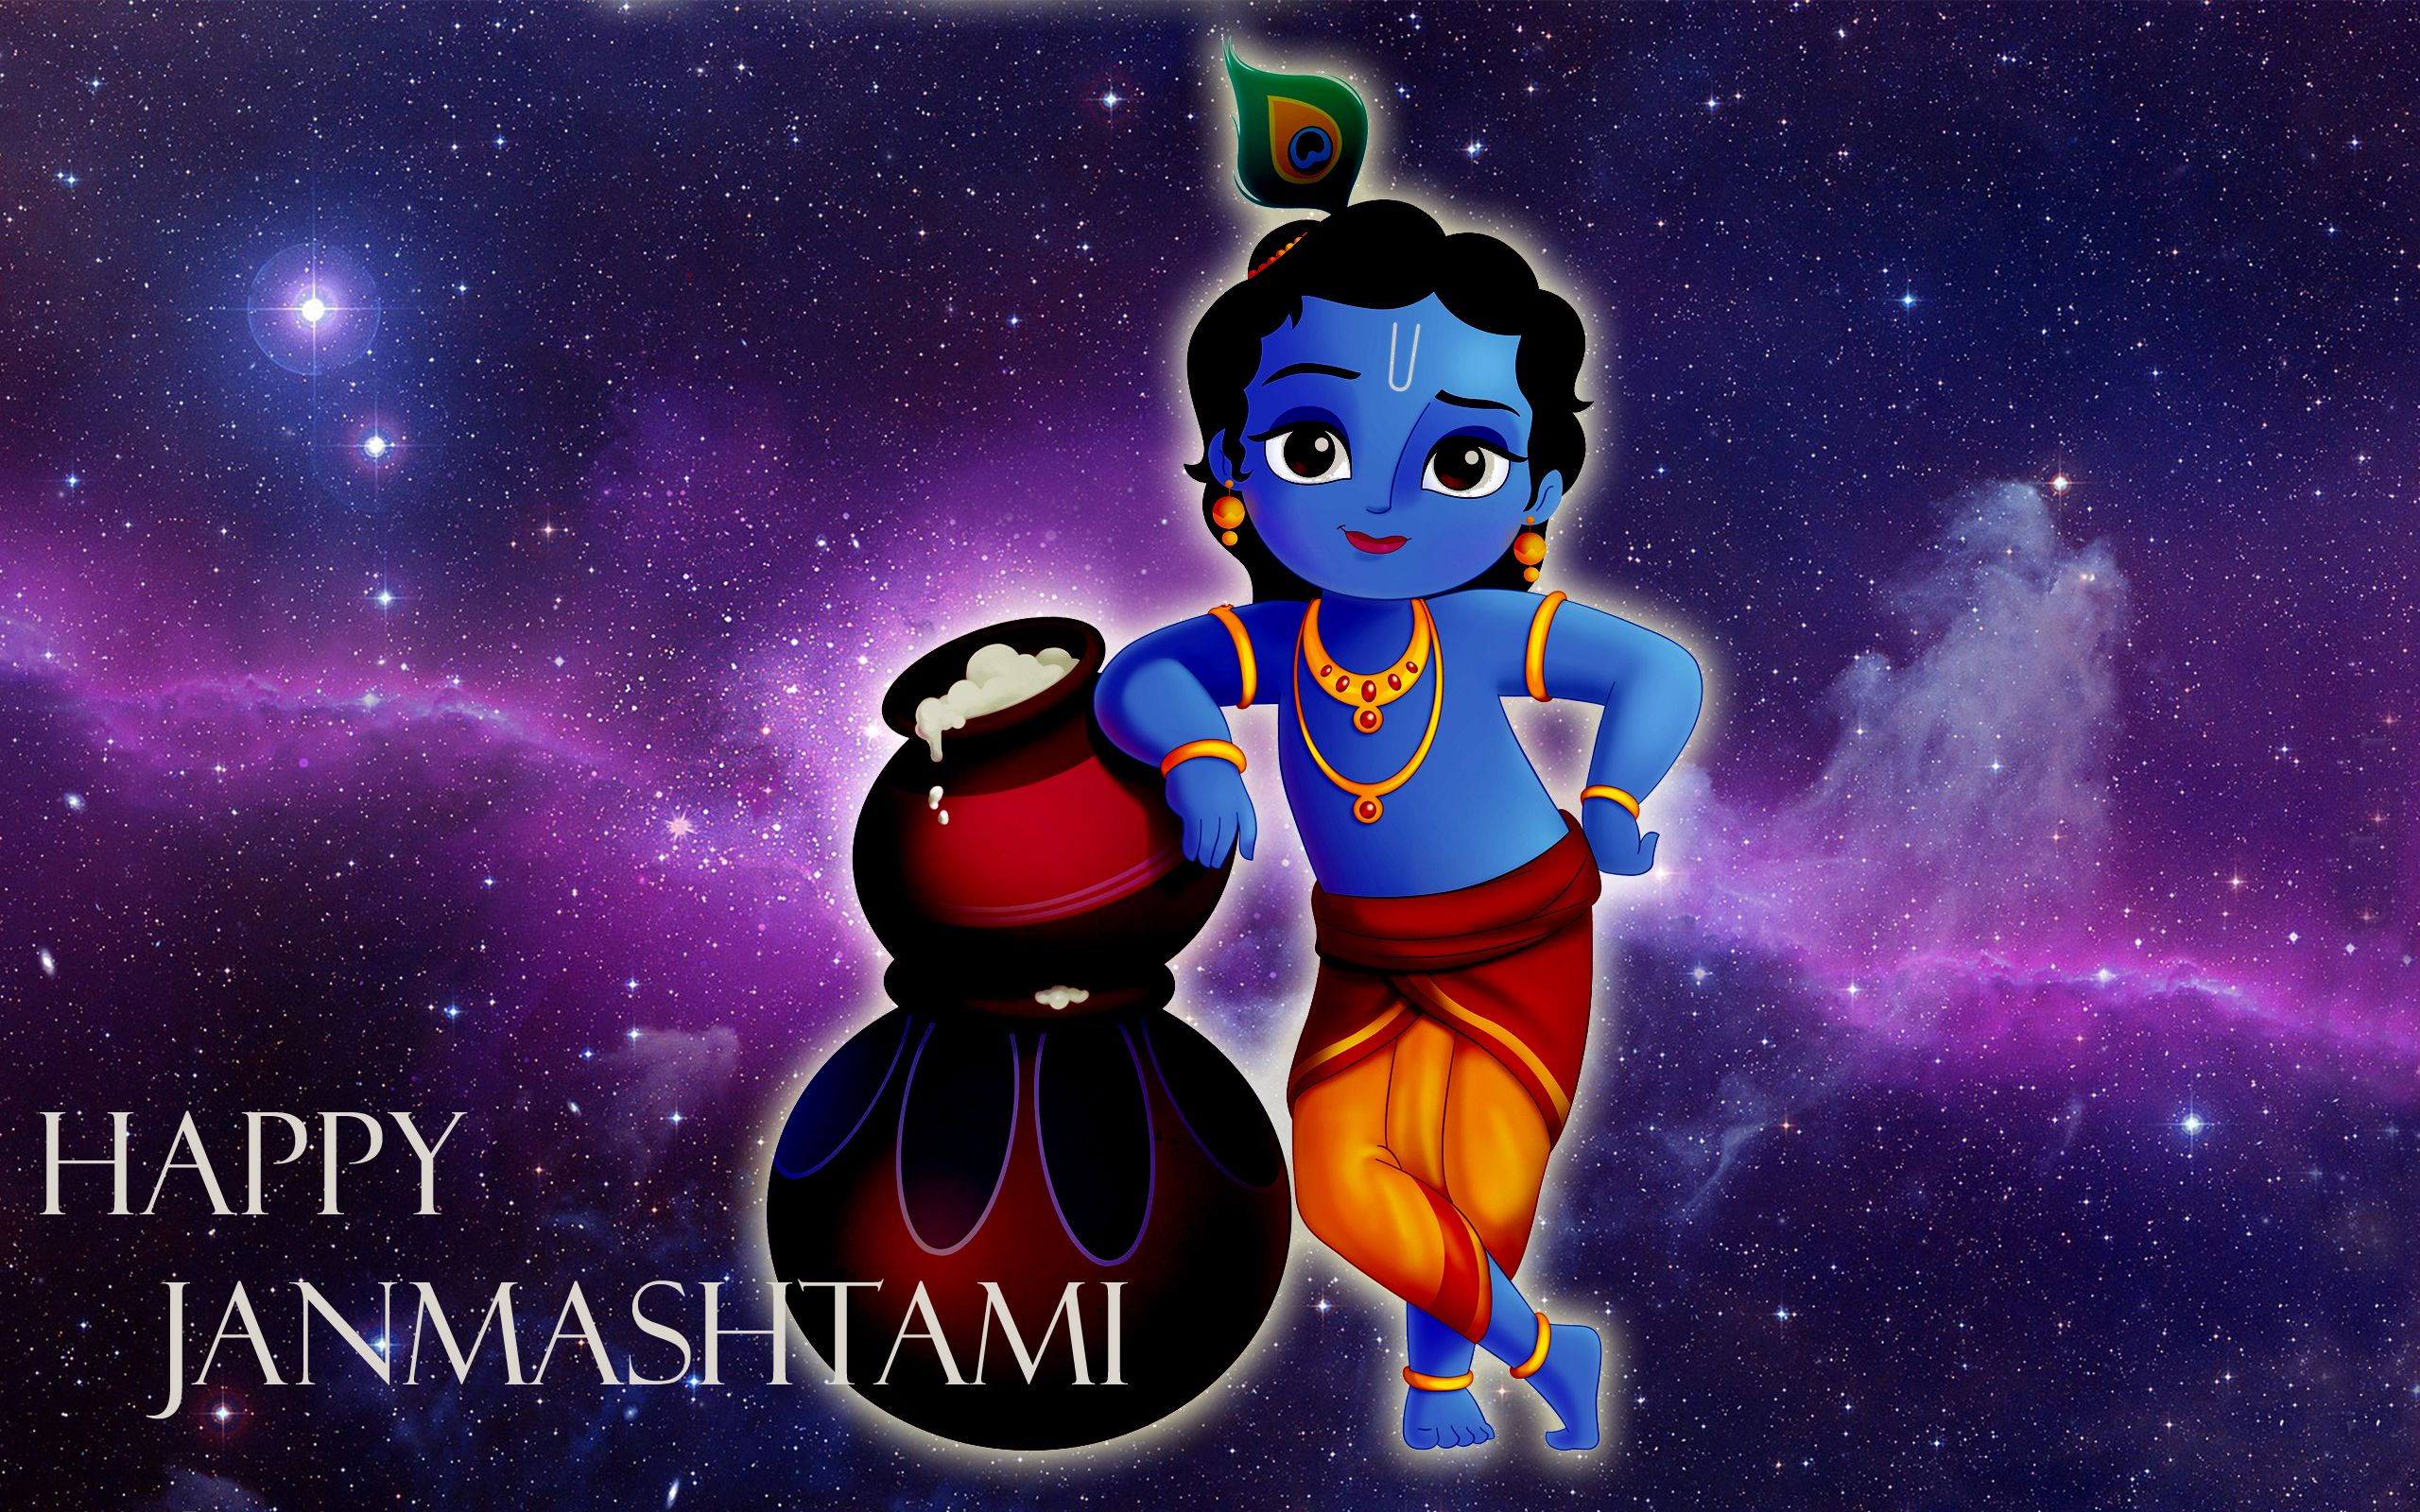 Hd Hd Desktop Wallpapers Of Janmashtami Happy Janmashtami Wishes Images Lord Krishna Birthday Wish Happy Janmashtami Janmashtami Images Janmashtami Wallpapers